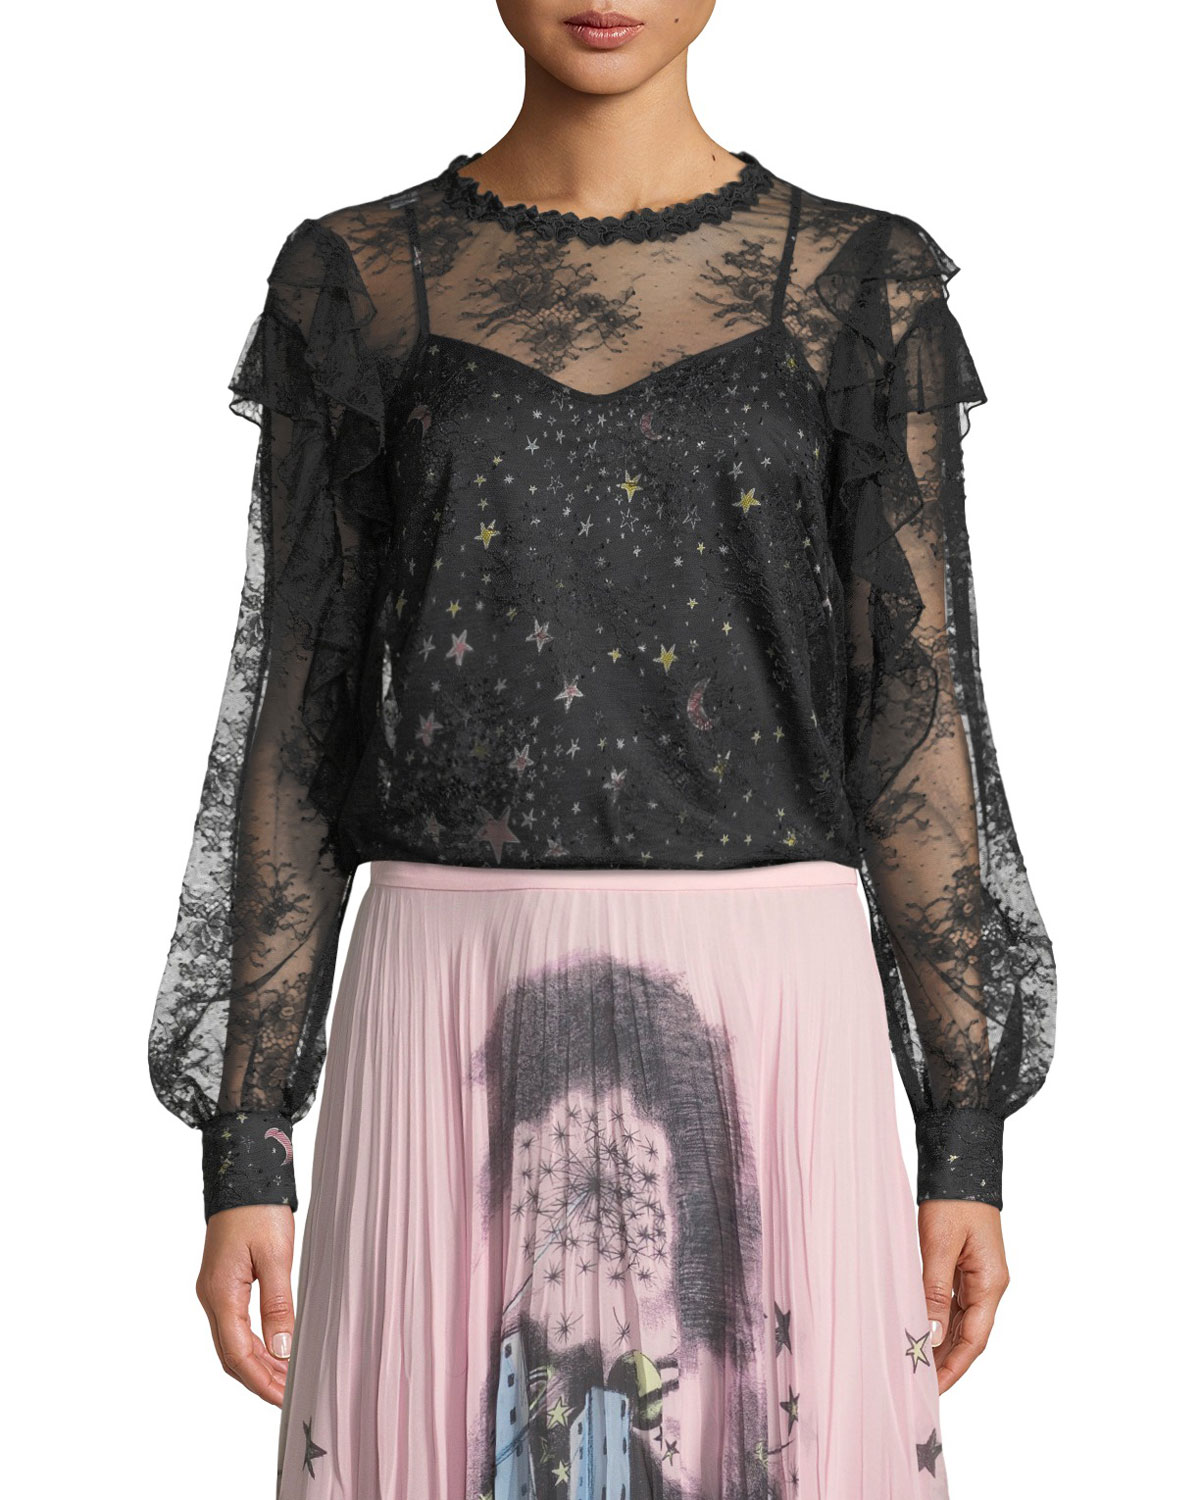 BOUTIQUE MOSCHINO Lace Blouse With Printed Camisole, Fantasy Print Blk